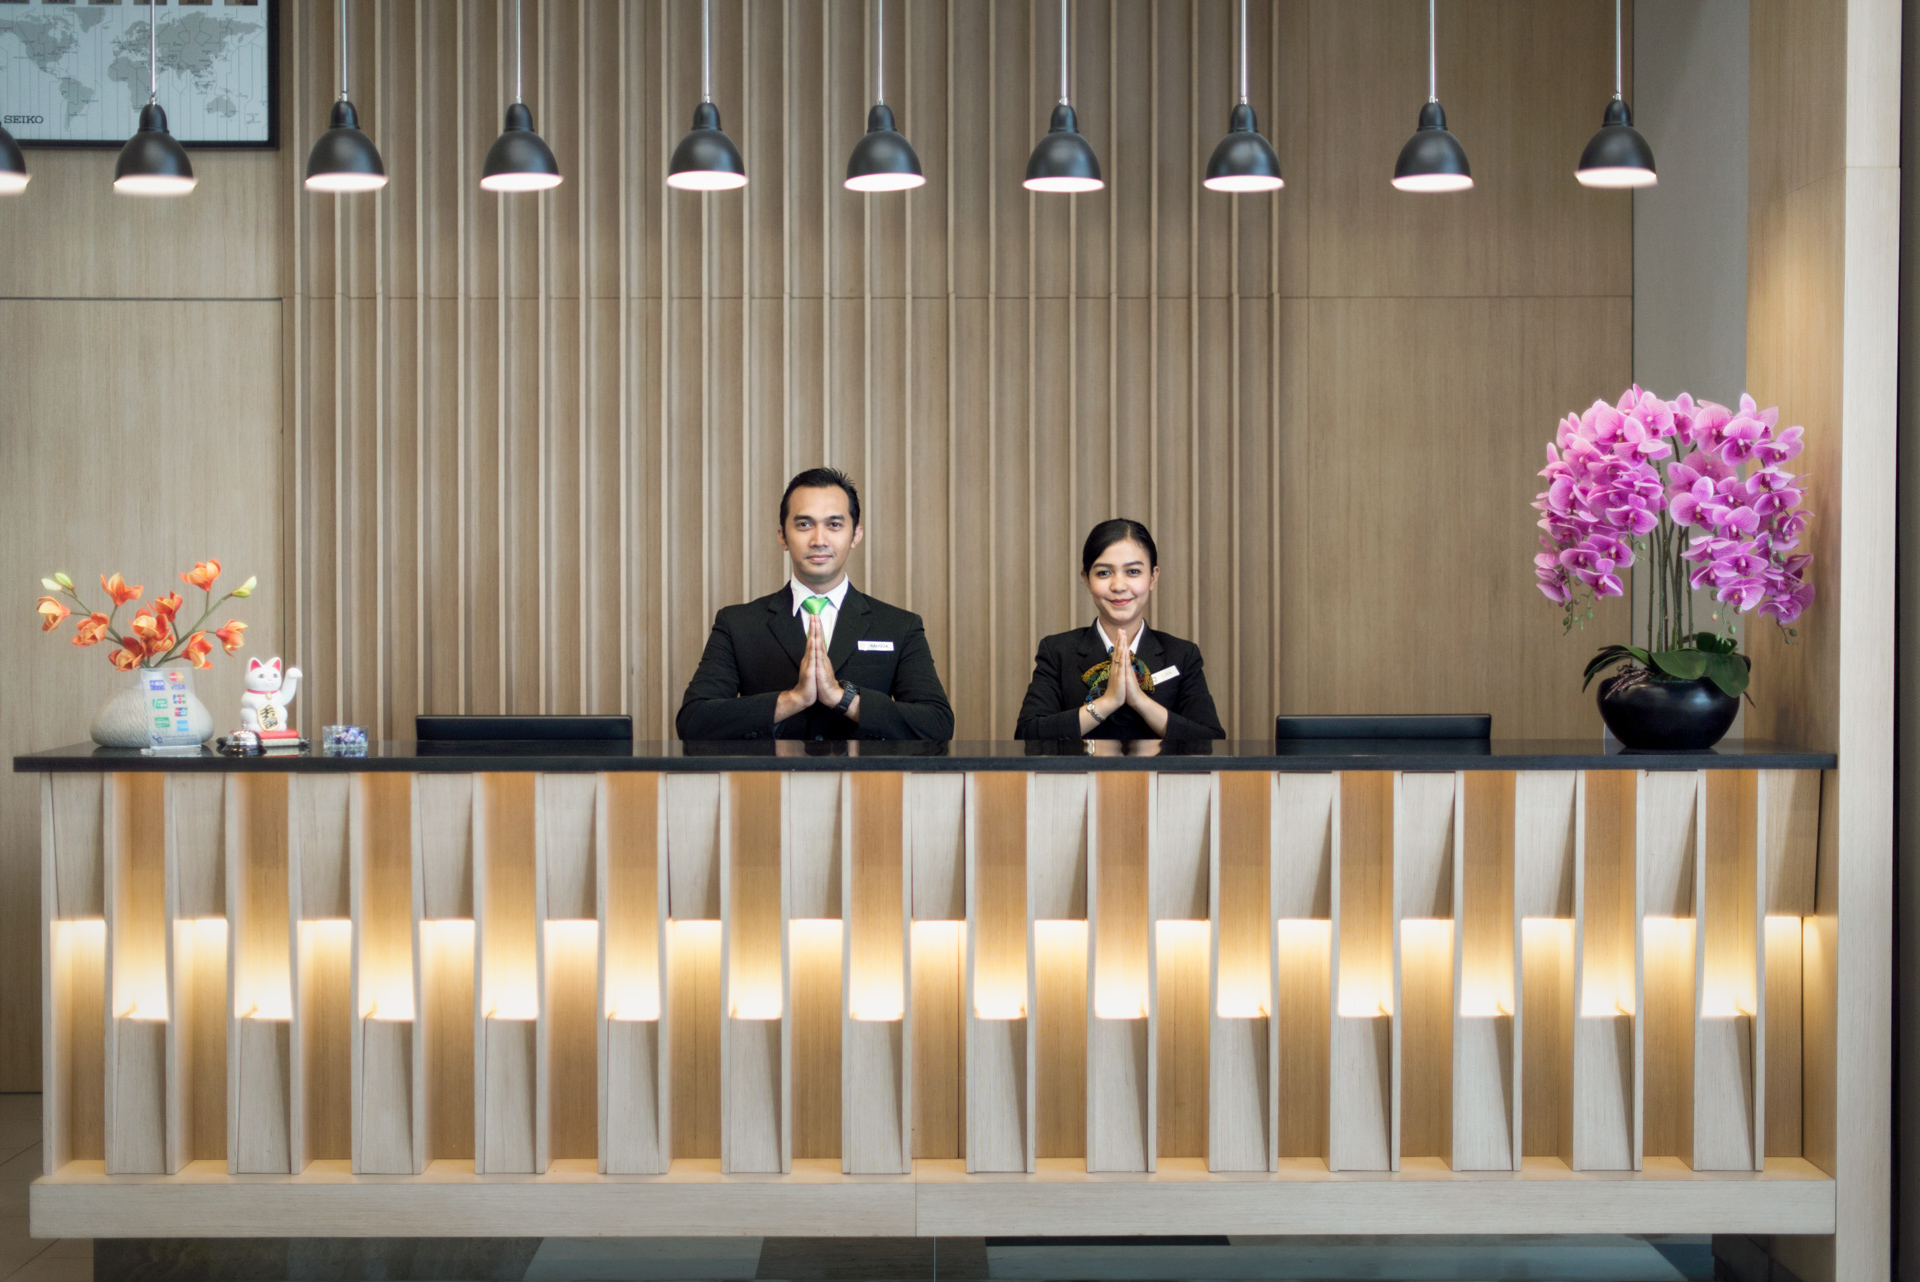 Lemo Hotel - A hotel located for both business and leisure in Serpong, Tangerang.